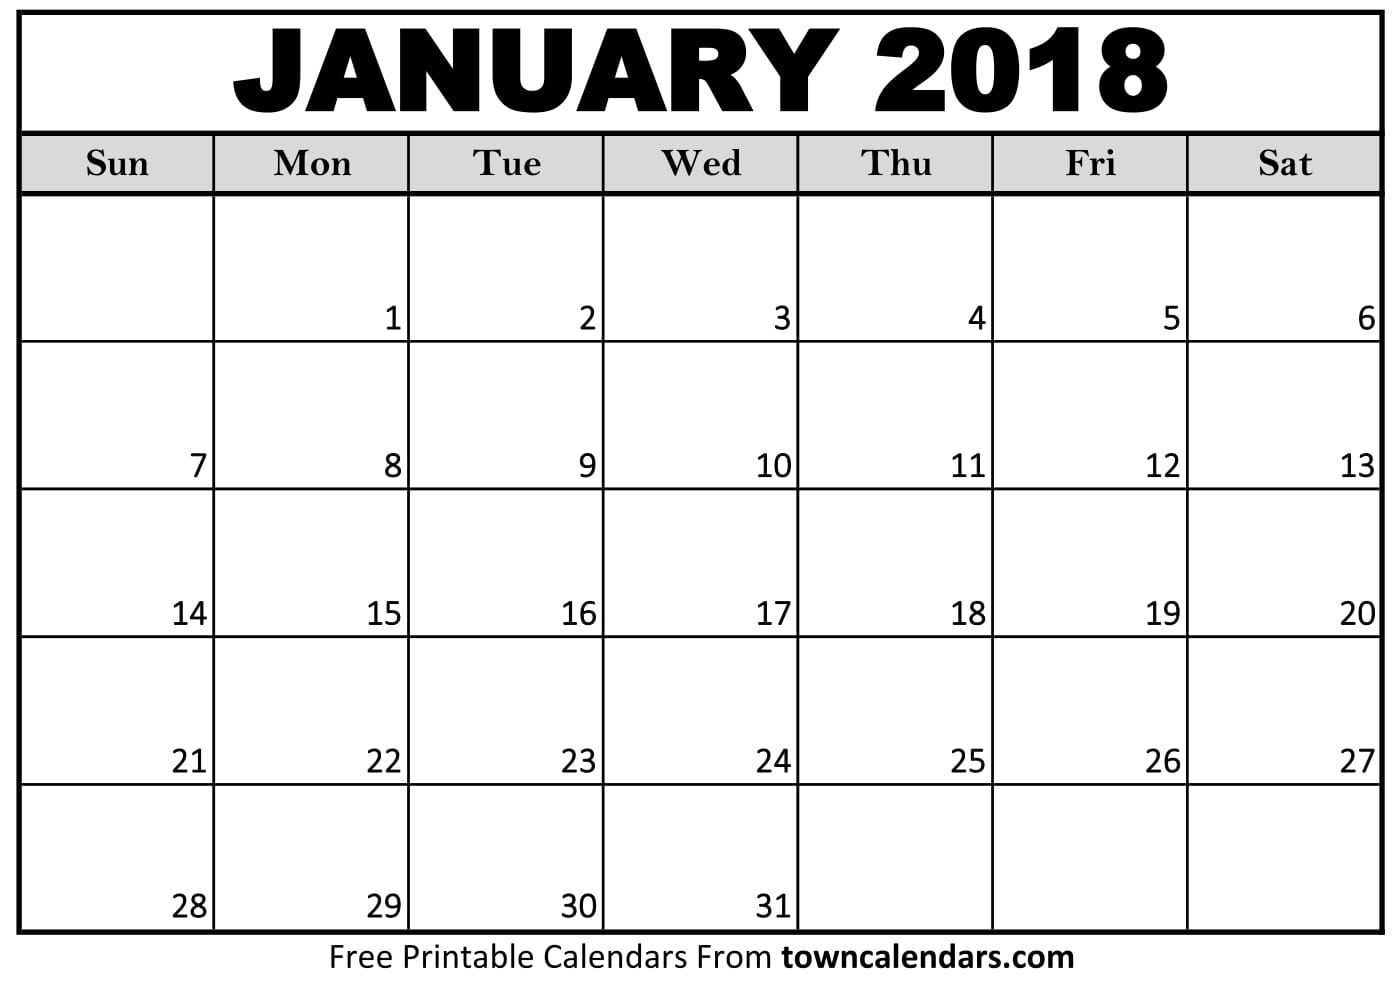 Printable January 2018 Calendar - towncalendars